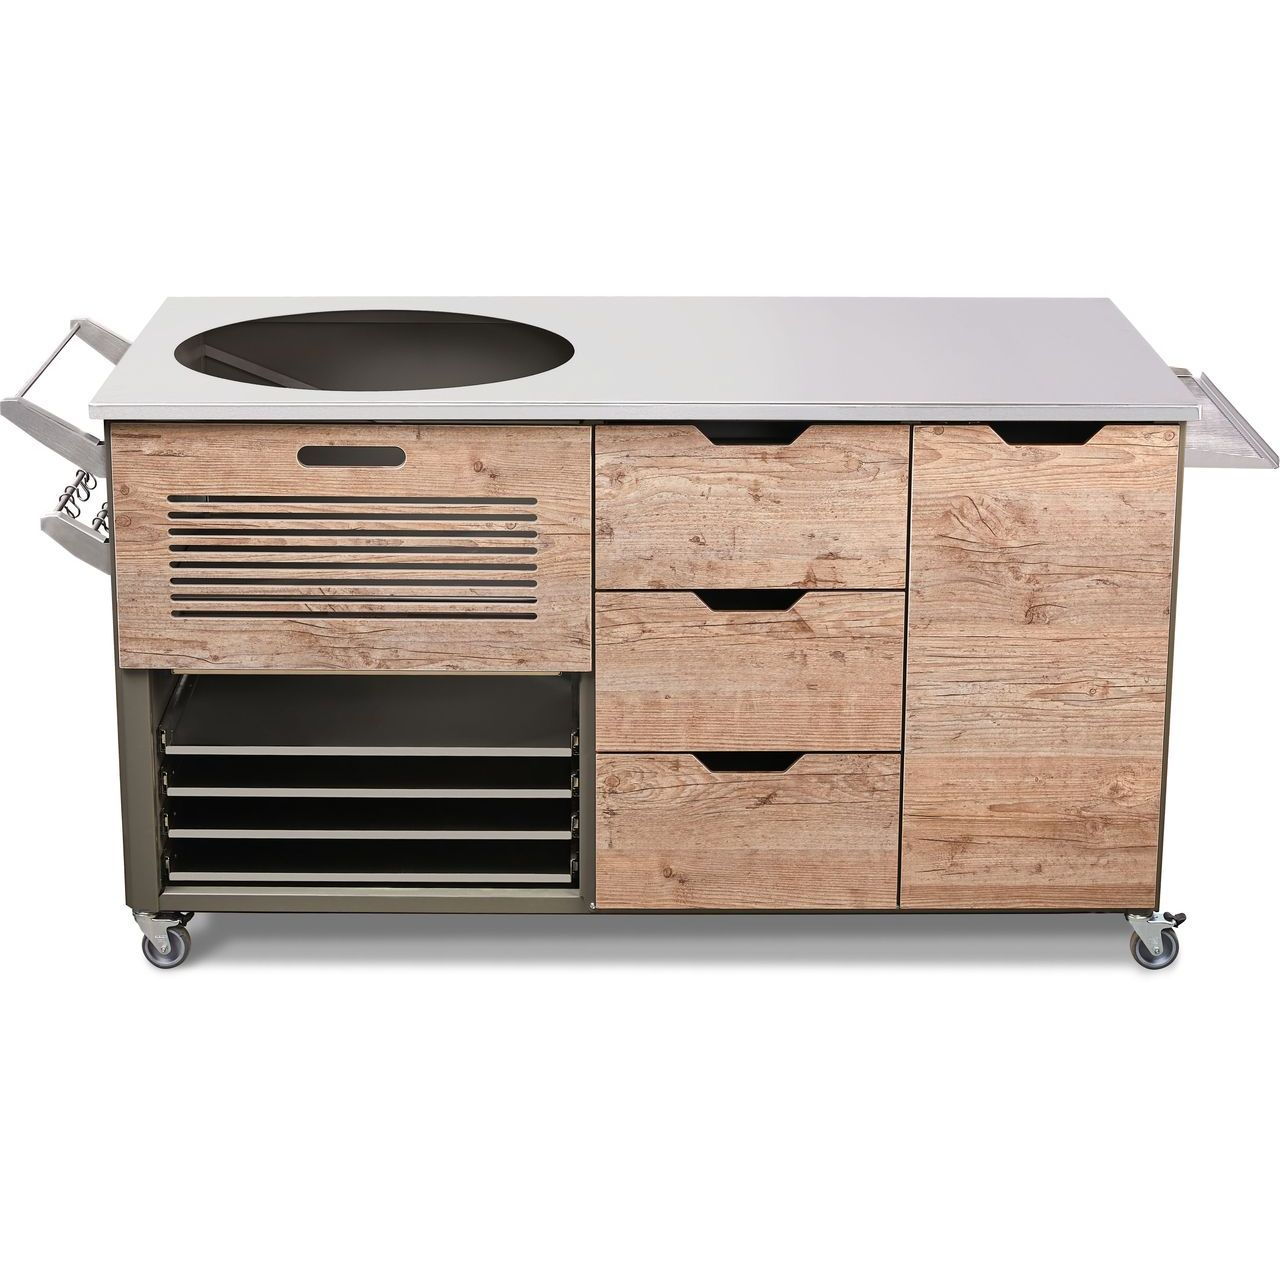 """KamadoSpace Infinite Island 22"""" With Hinges Panel in Fir Platinum"""